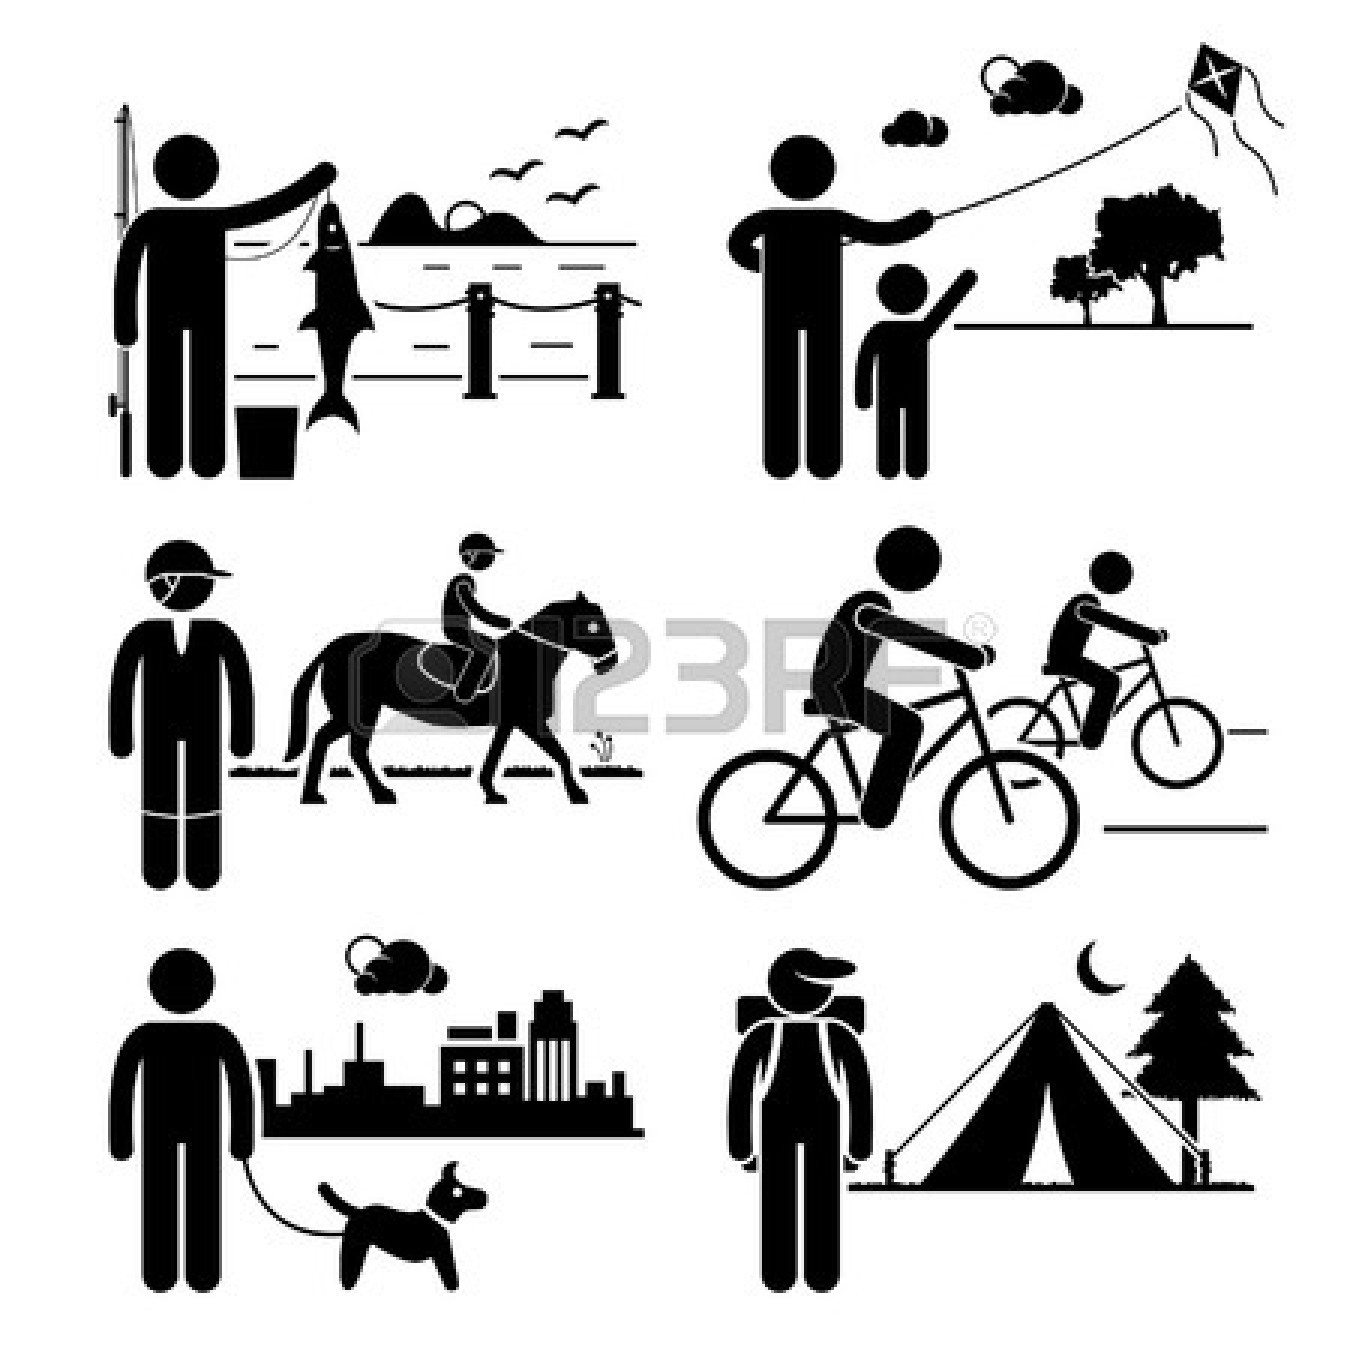 Horse Riding clipart stickman Fishing Walking Cycling Horse Recreational